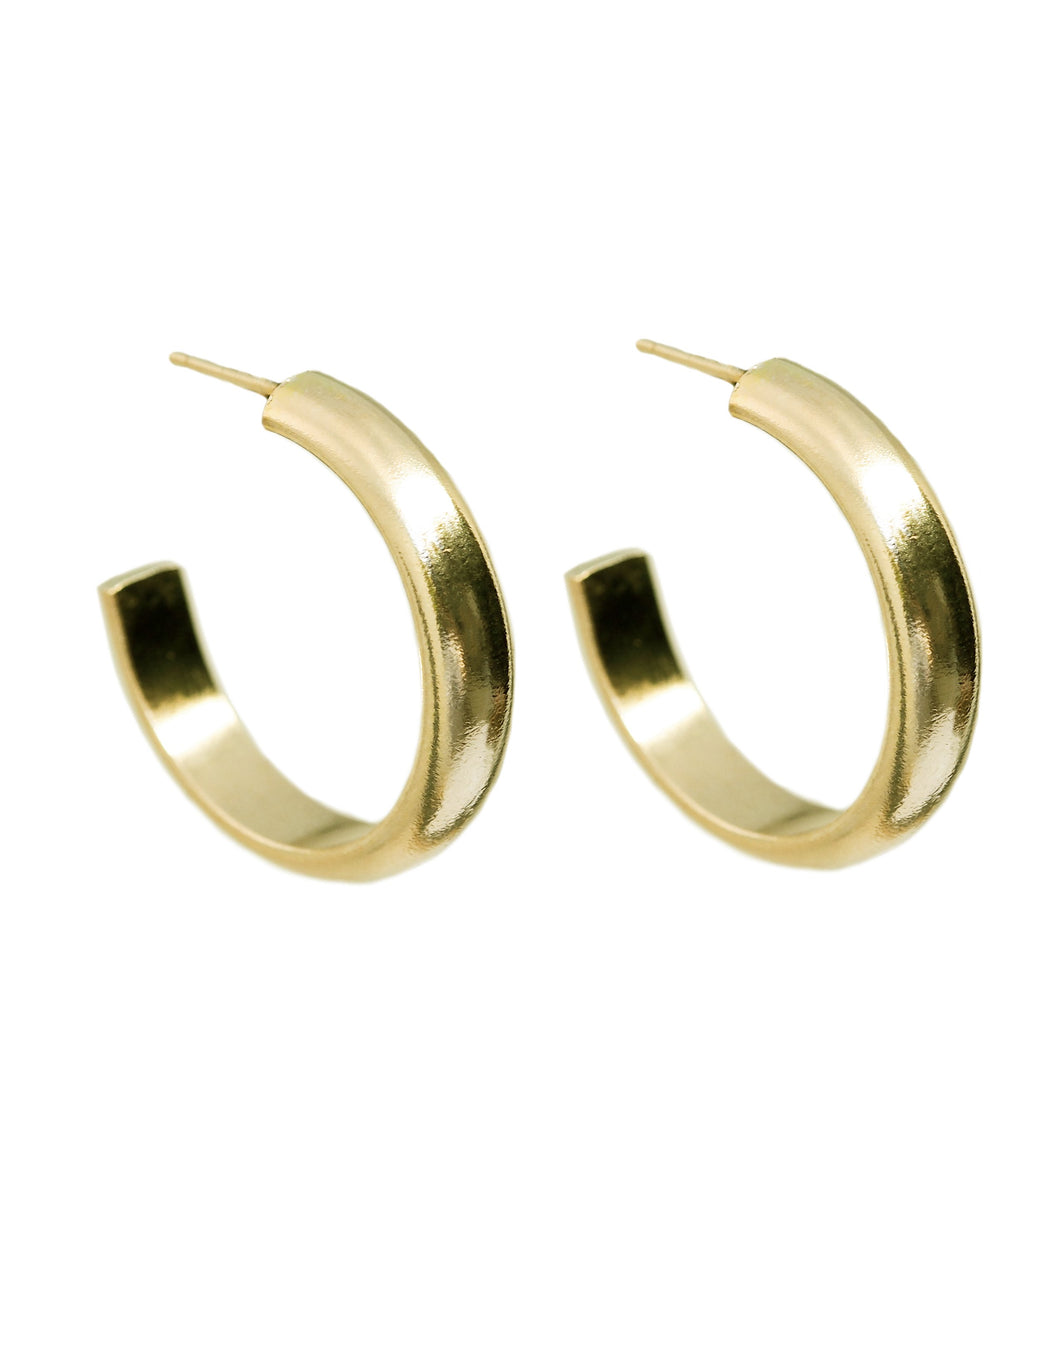 Basin 14k Hoop Earrings - Front and Company: Gifts